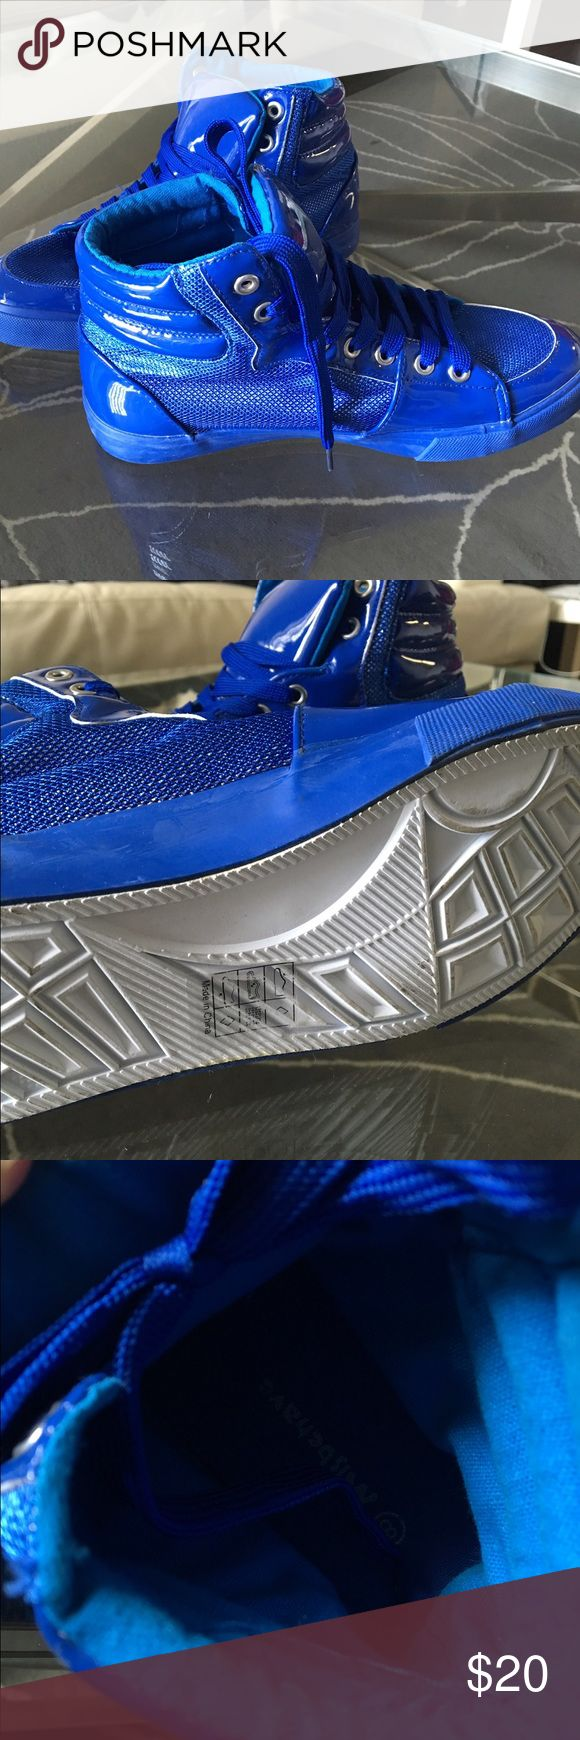 Patent Leather and Metallic Mesh Lace Up Sneakers Blue Patent Leather and Metallic Mesh Lace up Sneakers #Dope Shiny Blue Patent Leather and Metallic Mesh Lace up Sneakers  Brand-new from a boutique shoe store Bought for $40 Shoes Sneakers